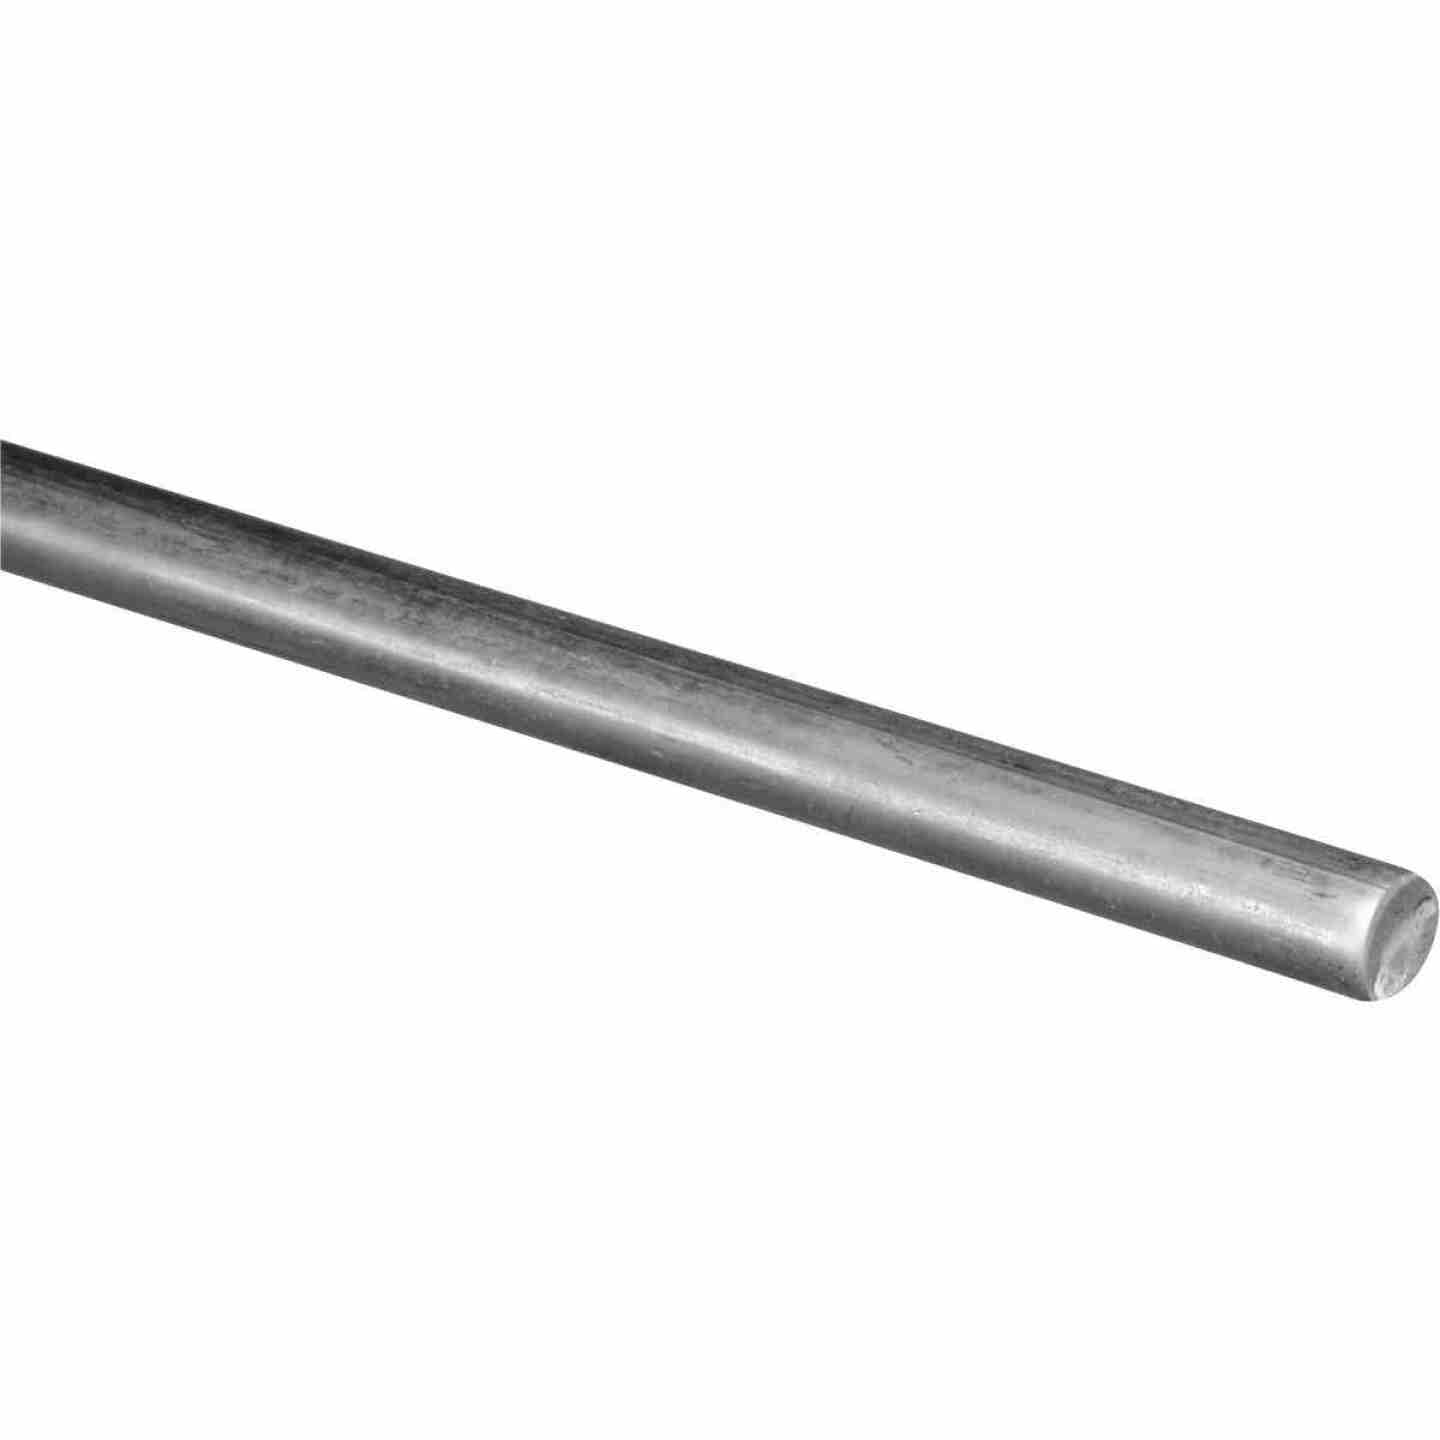 Hillman Steelworks Steel 3/4 In. X 3 Ft. Solid Rod Image 1